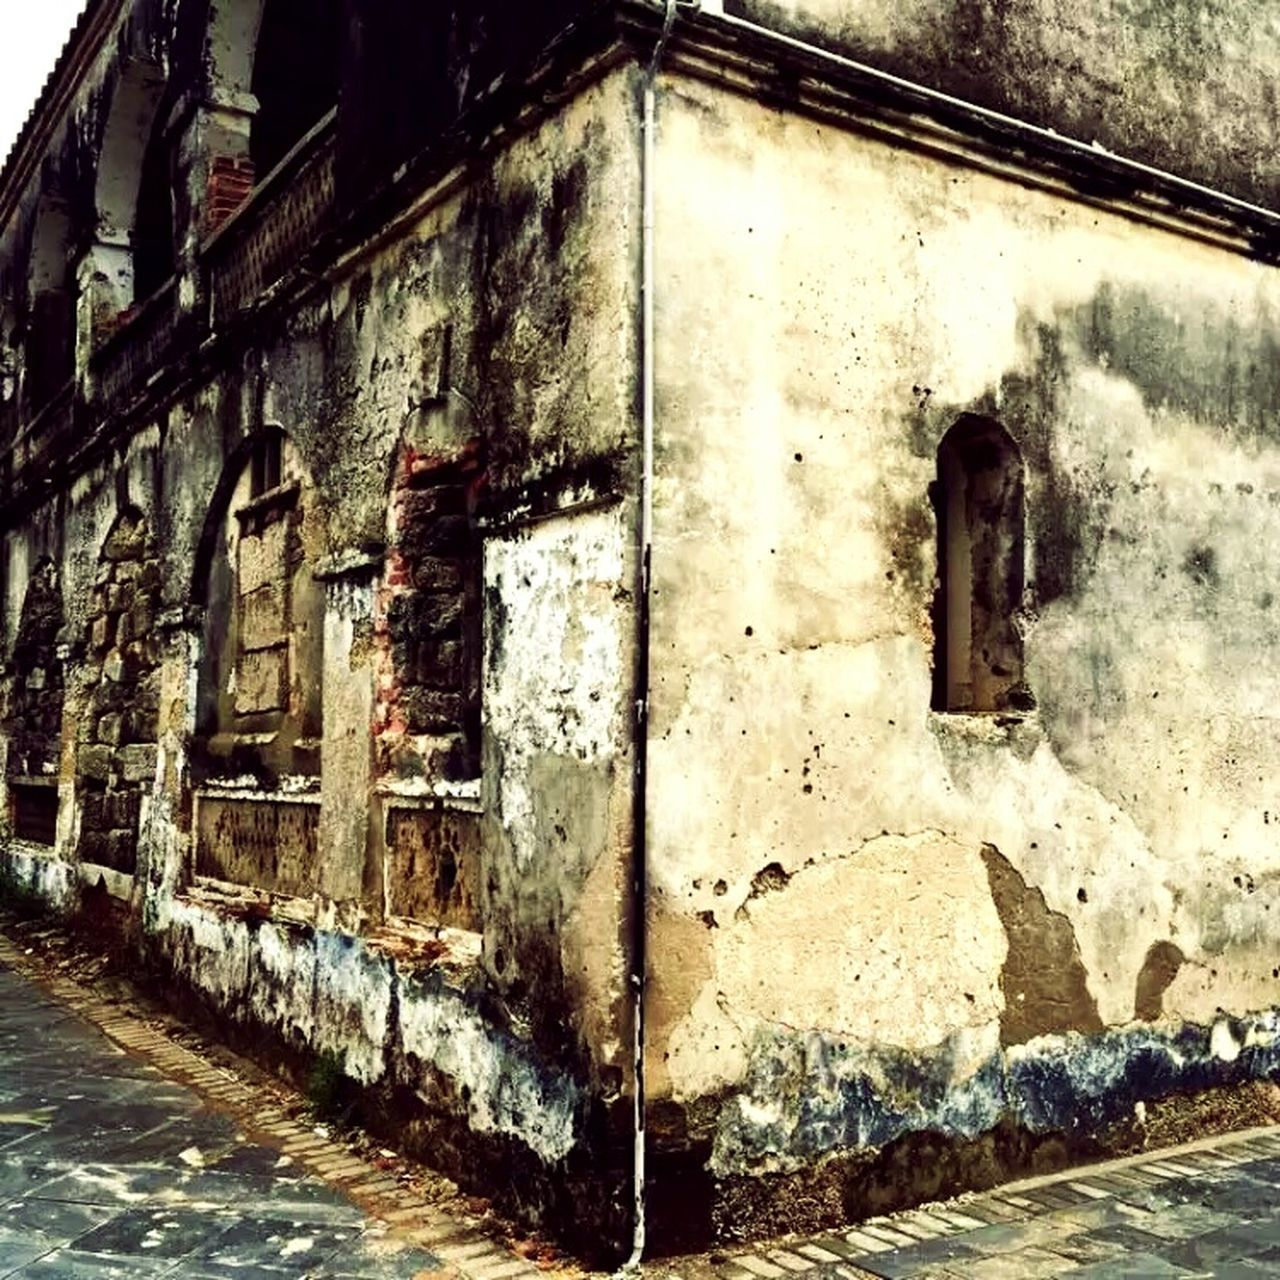 architecture, built structure, abandoned, weathered, damaged, no people, day, building exterior, outdoors, close-up